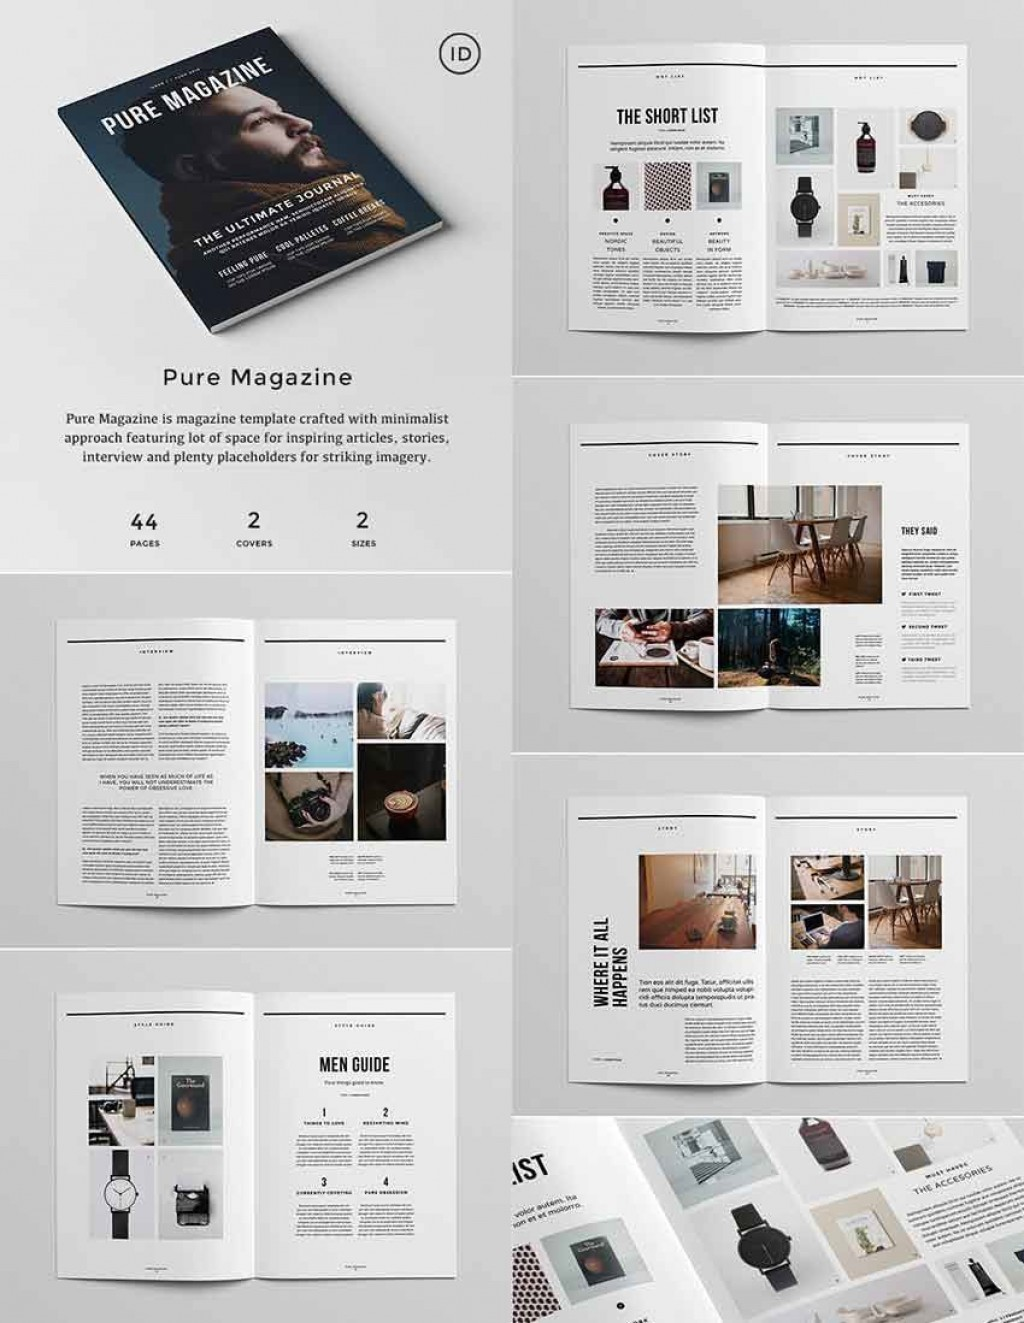 006 Impressive Free Magazine Article Layout Template For Word Design Large